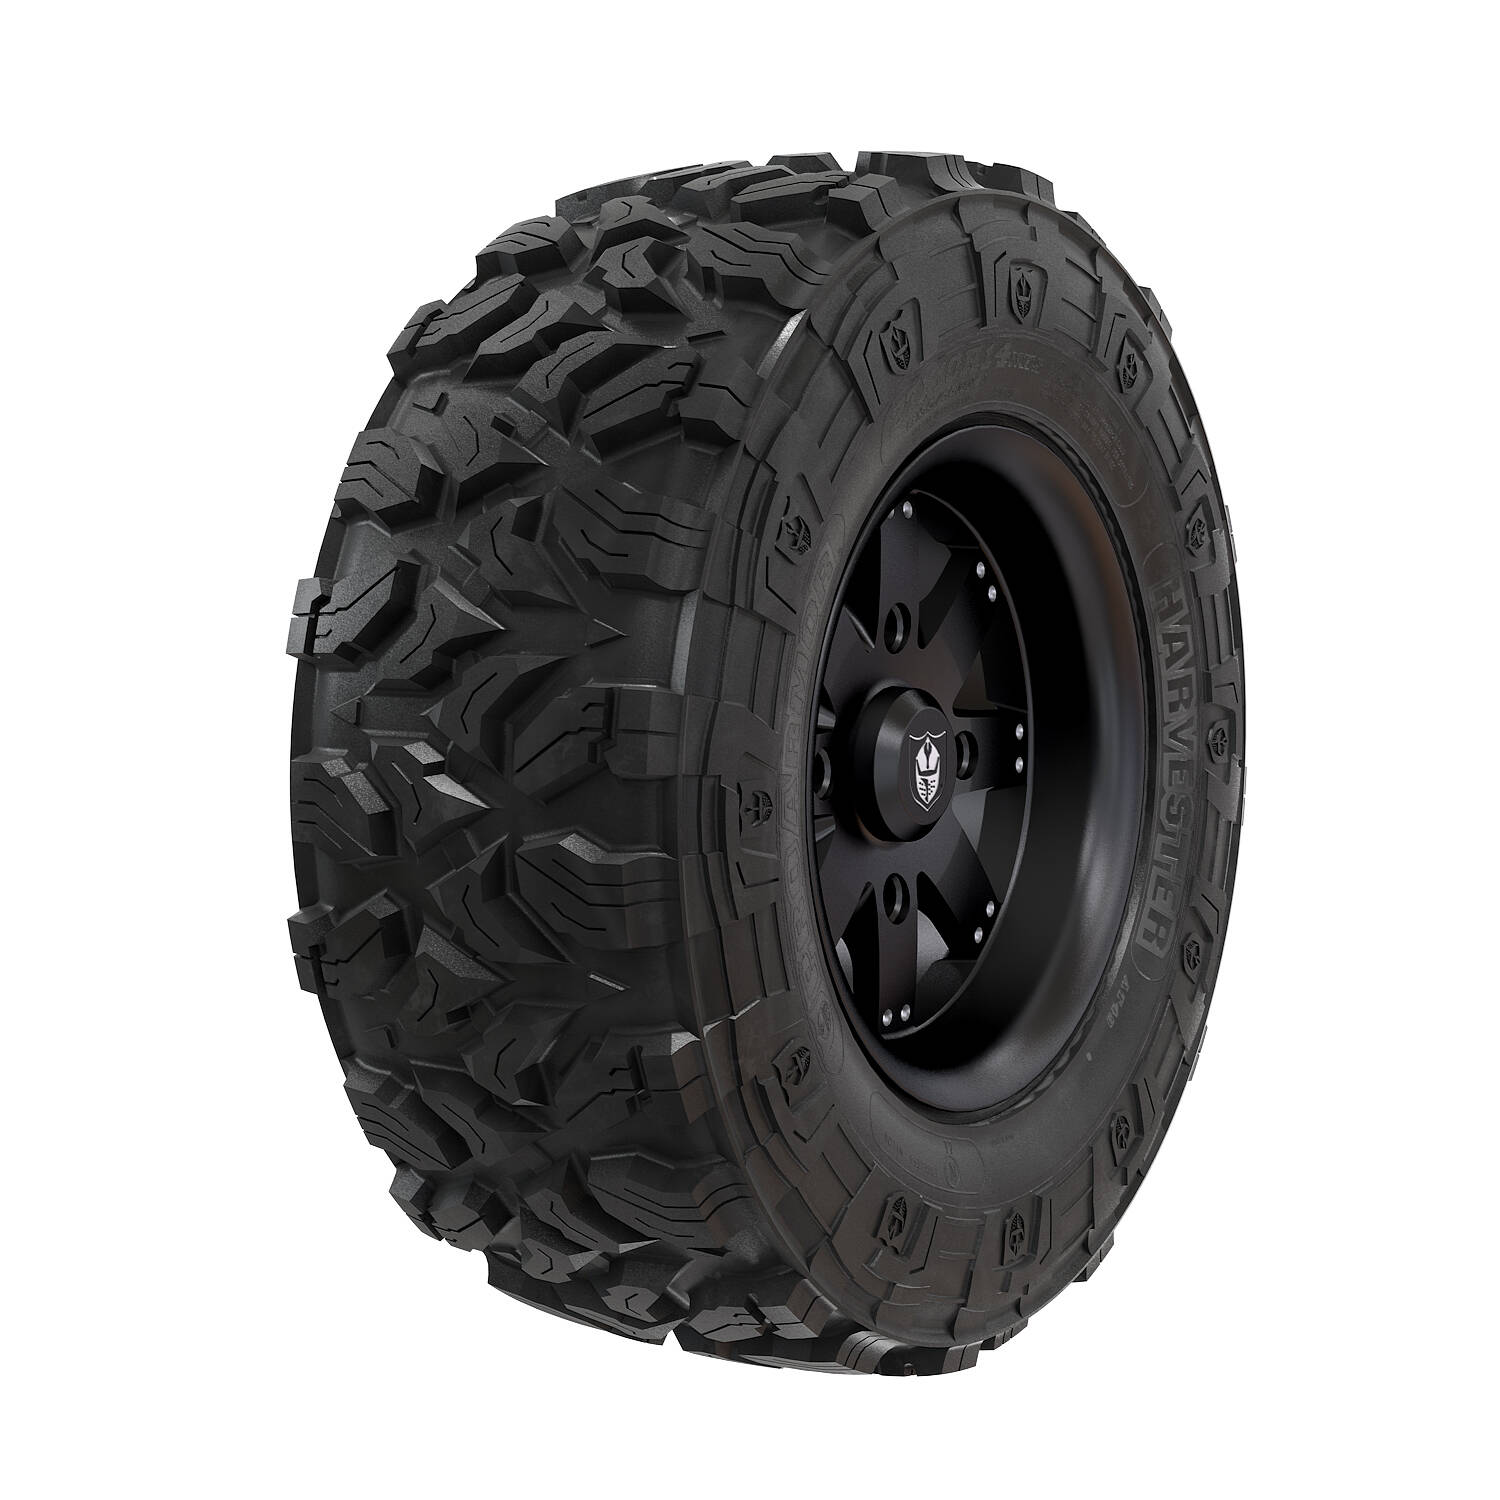 Wheel & Tire Set: Pro Armor Harvester® & Amplify - Matte Black - 28""